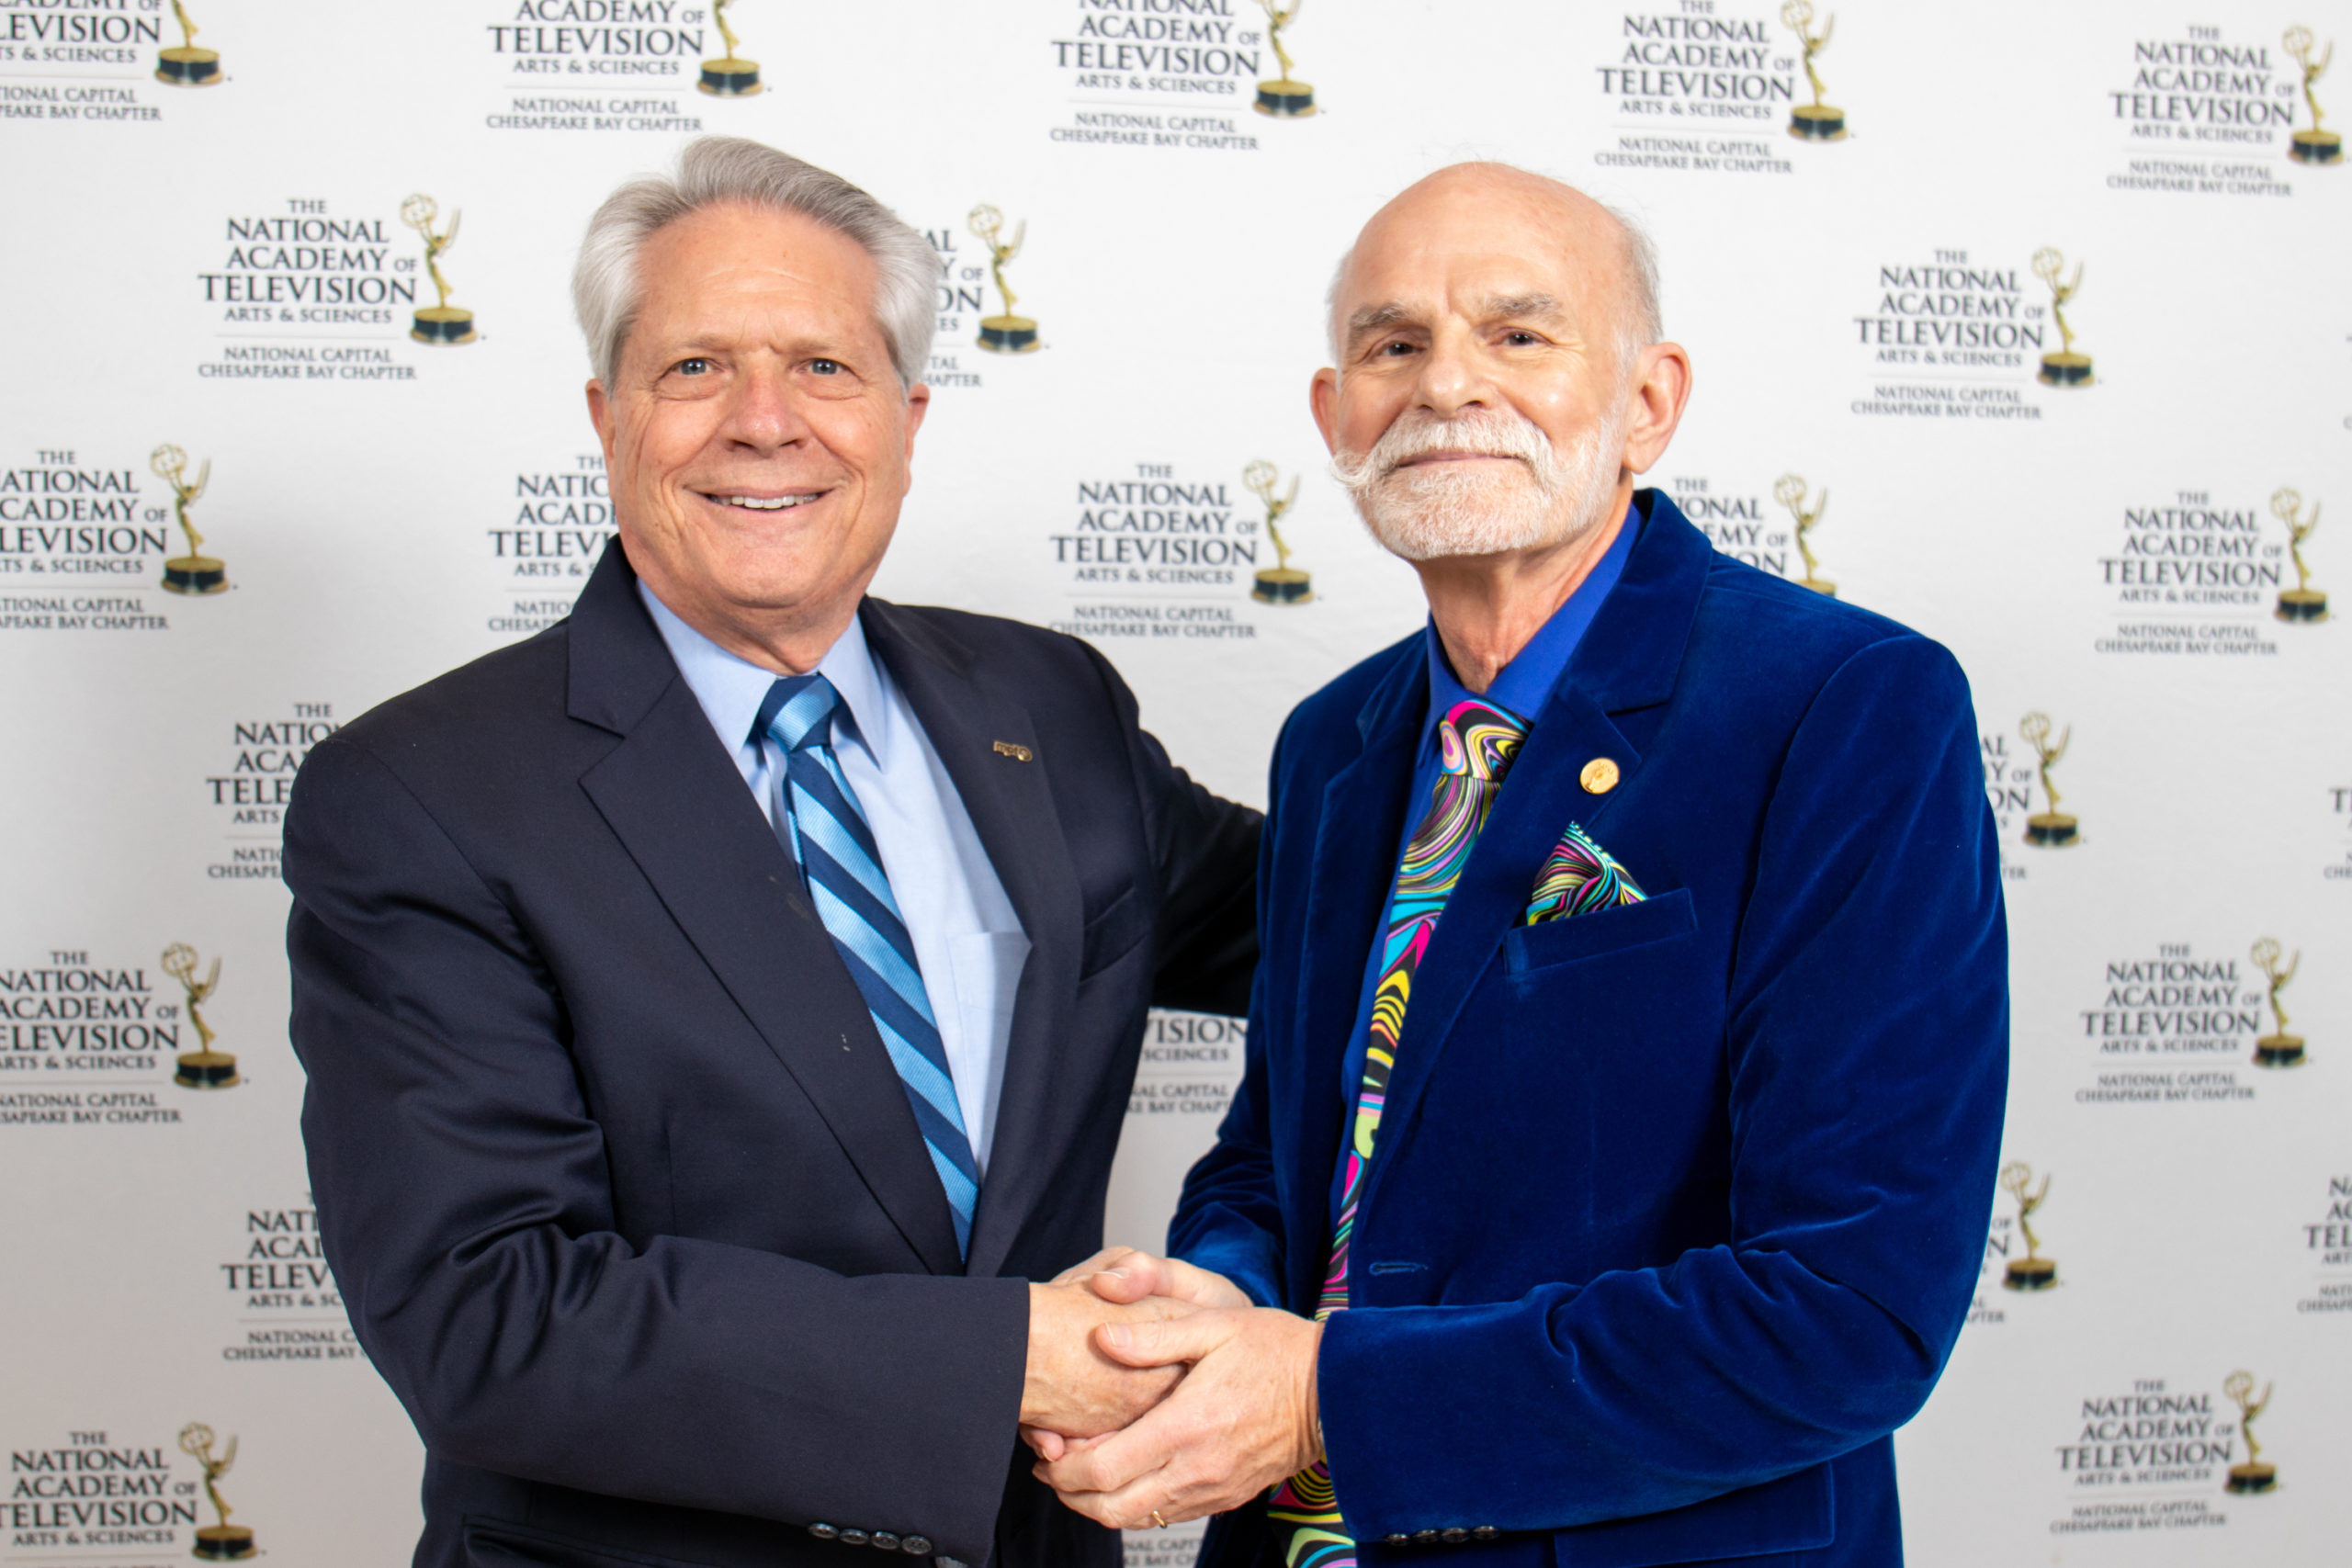 Senior vice president of Maryland Public Televsion George Beneman (right) accepted an award for his half-century dedication to local broadcasting. Here he shakes hands with CEO Larry Unger (Pete Estrada).